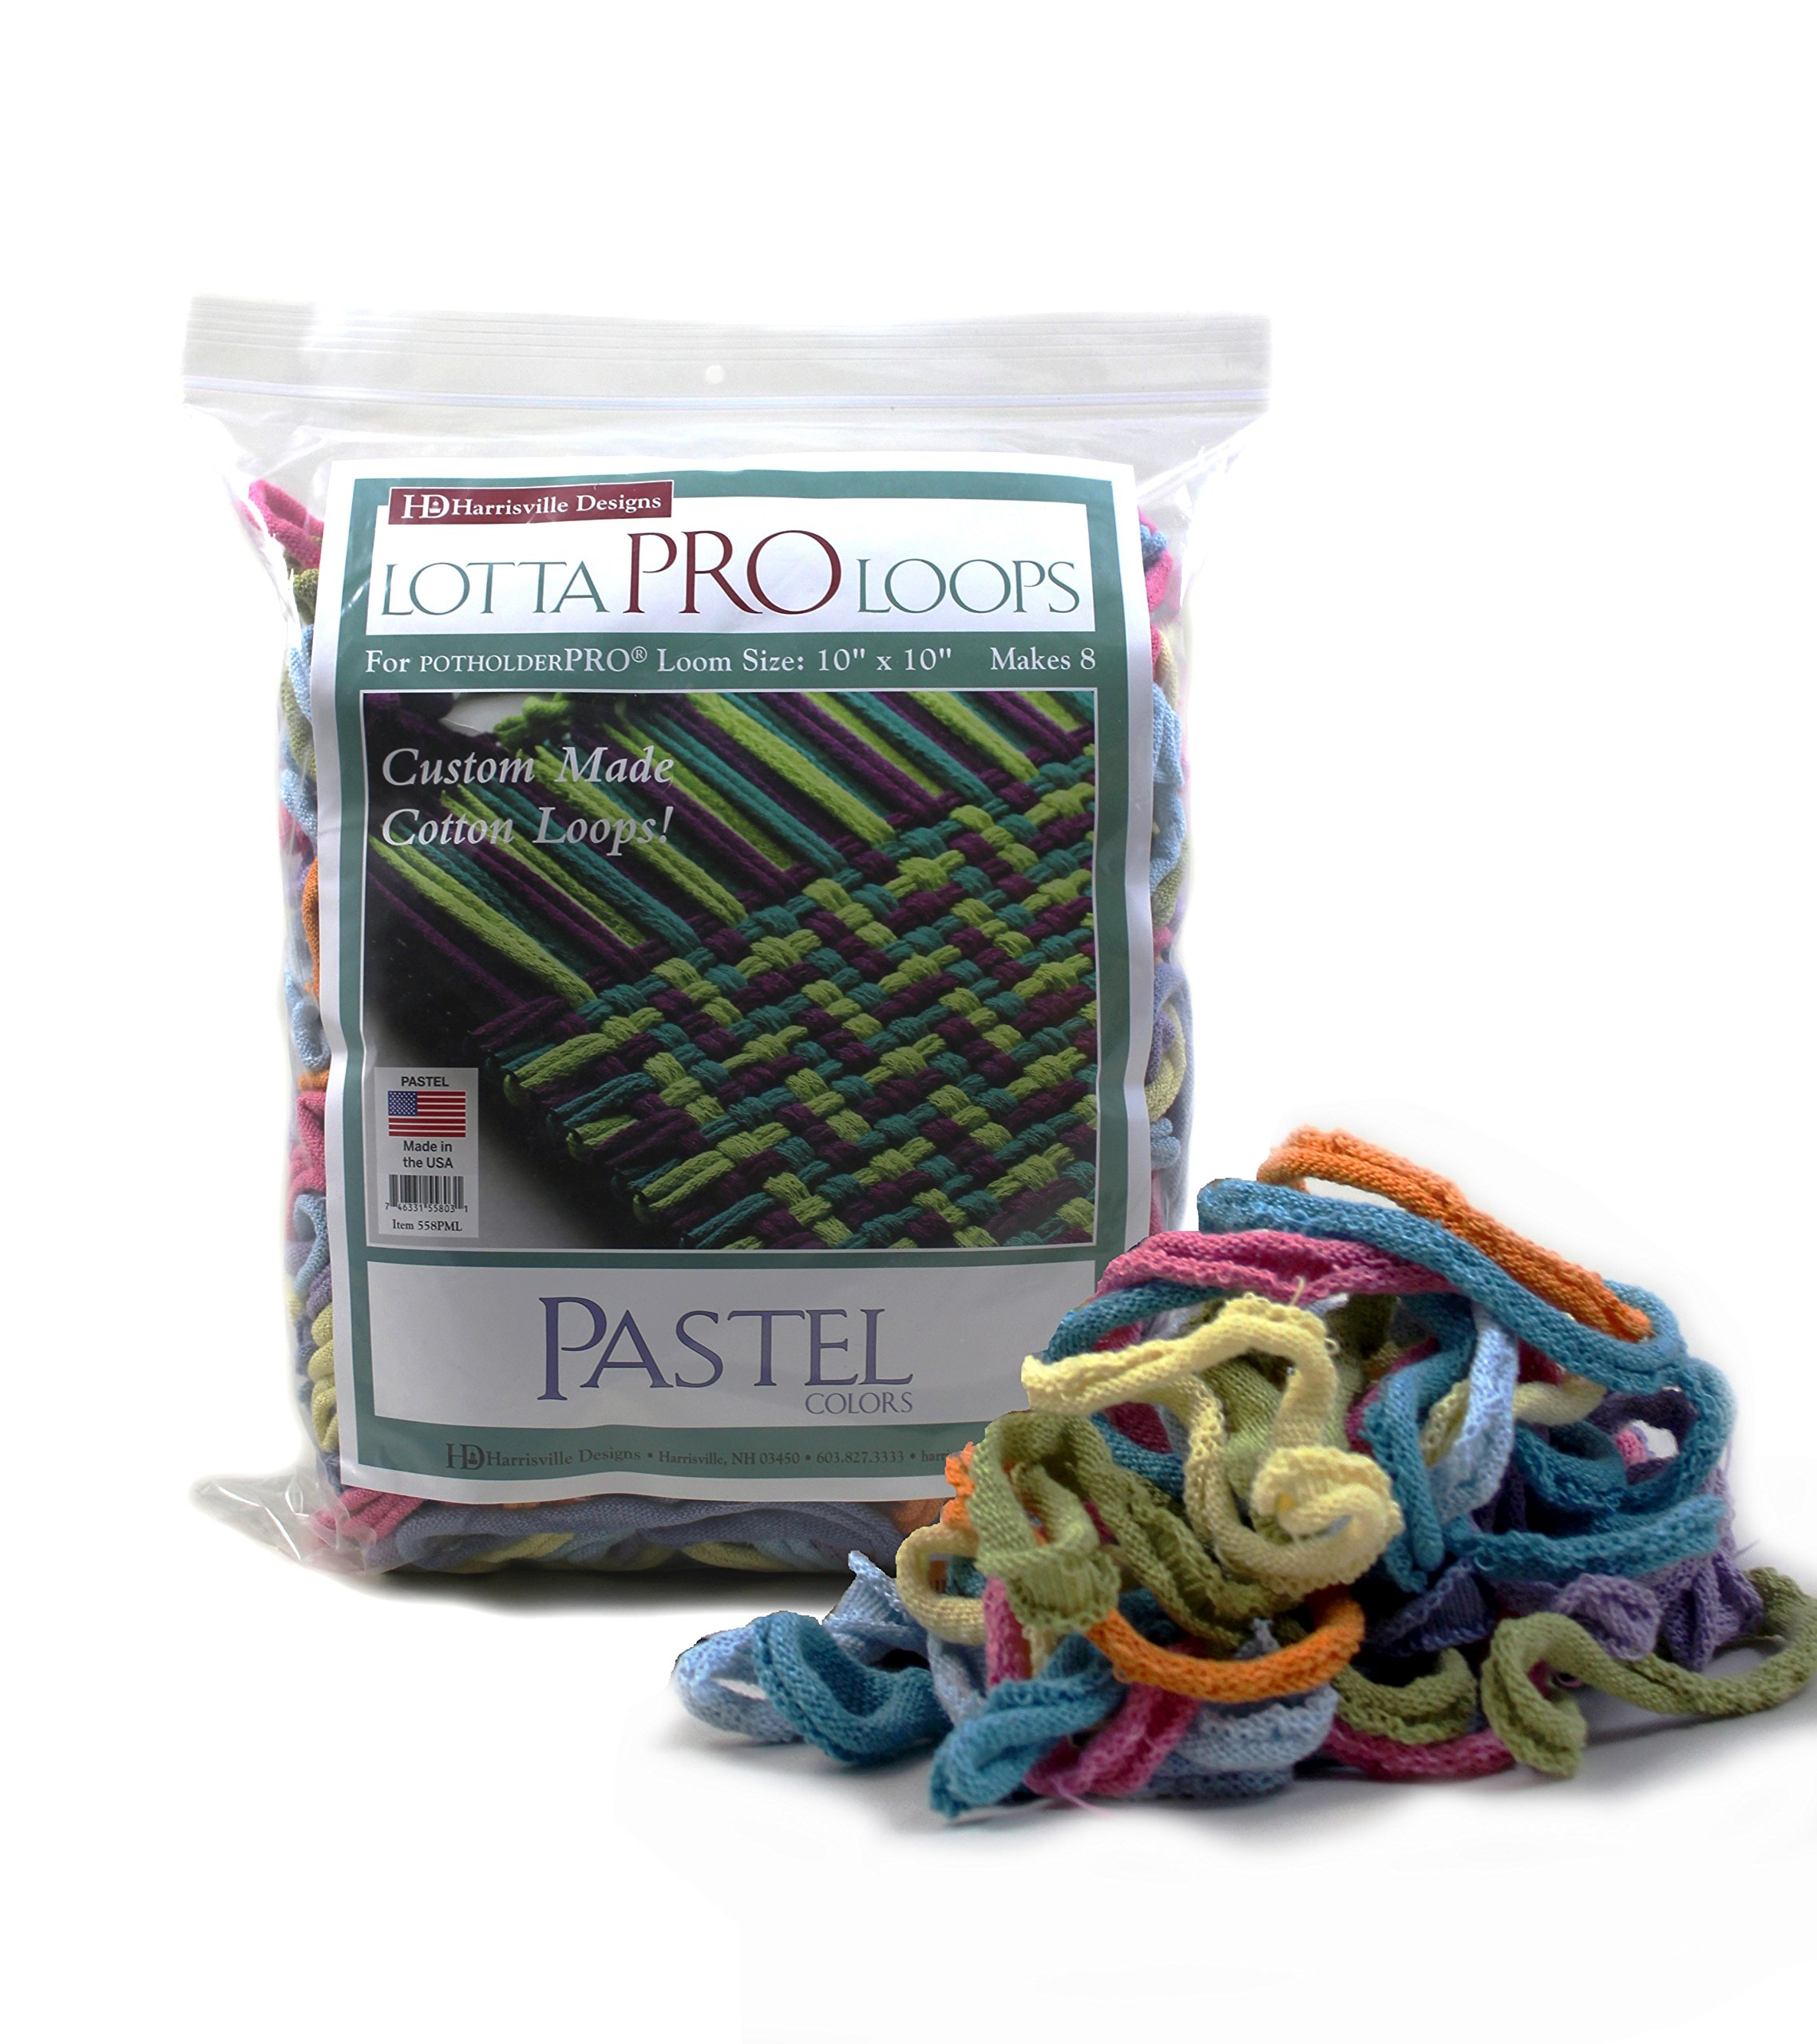 """Harrisville Designs Lotta Loops 10"""" Pro Size Pastel Cotton Loops Makes 8 Potholders, Weaving, Crafts For Kids and Adults-Assorted Colors"""